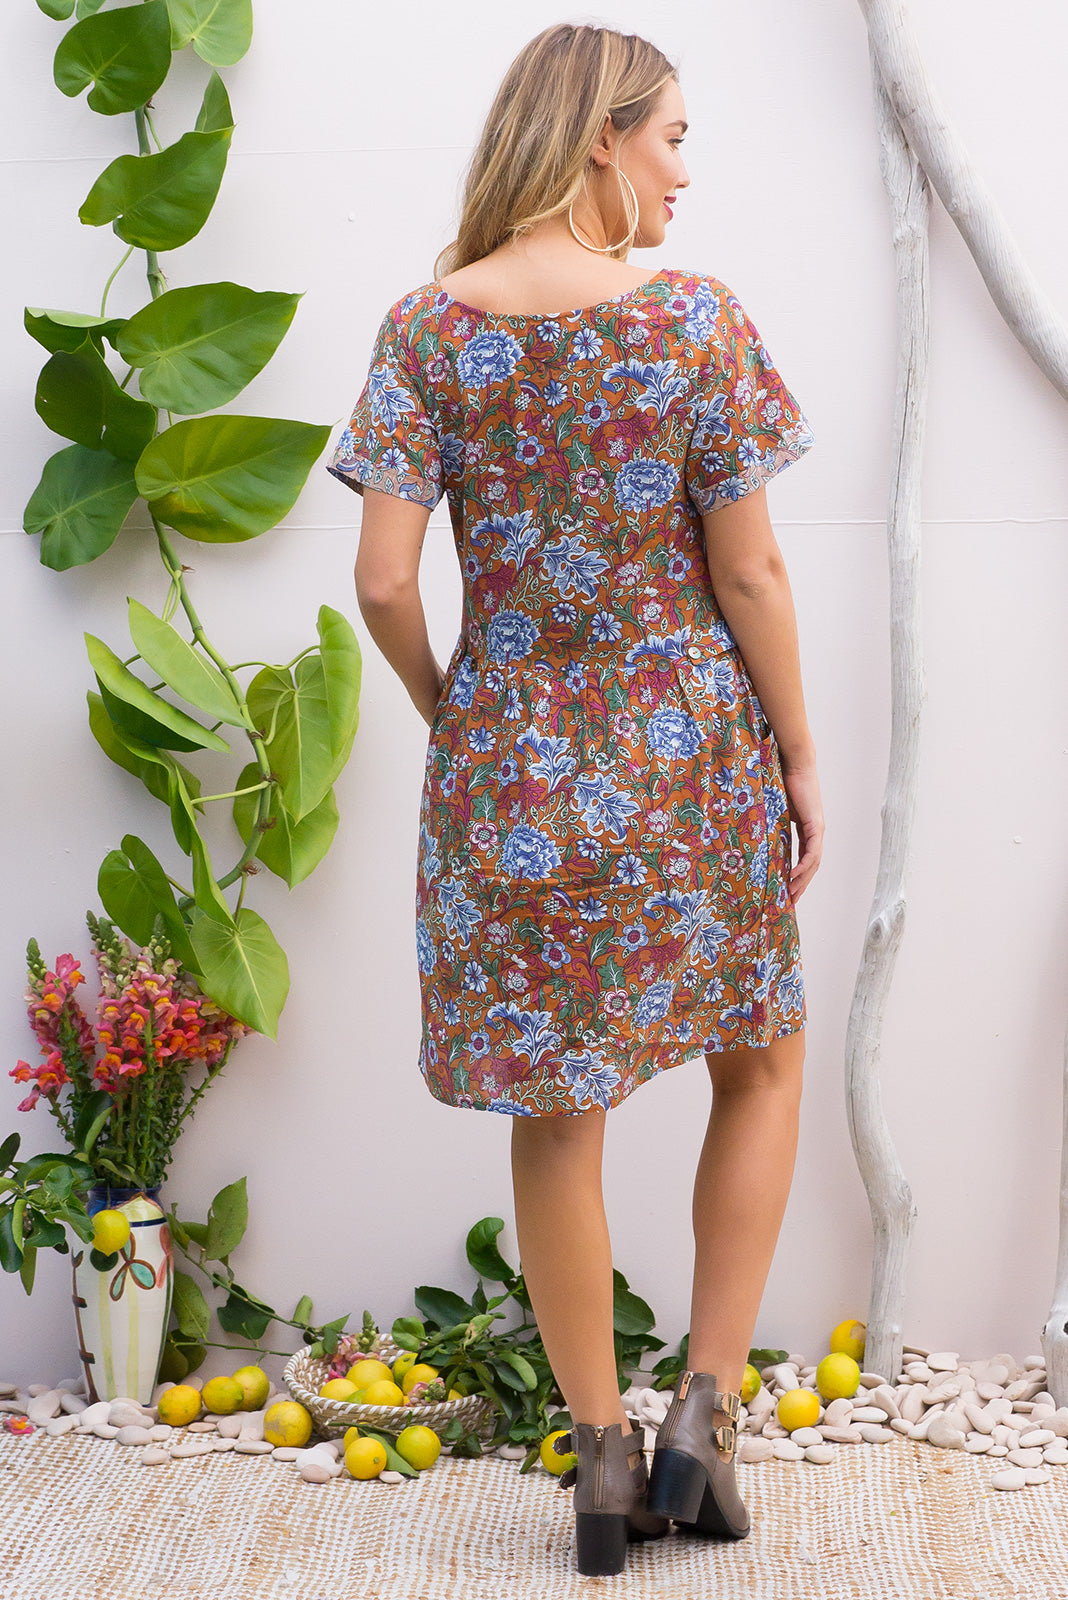 Rosella Rosetti Rust Cotton dress features a button front to the drop waist and 2 front pockets in a gorgeous intricate bohemian print on a cotton rayon blend fabric